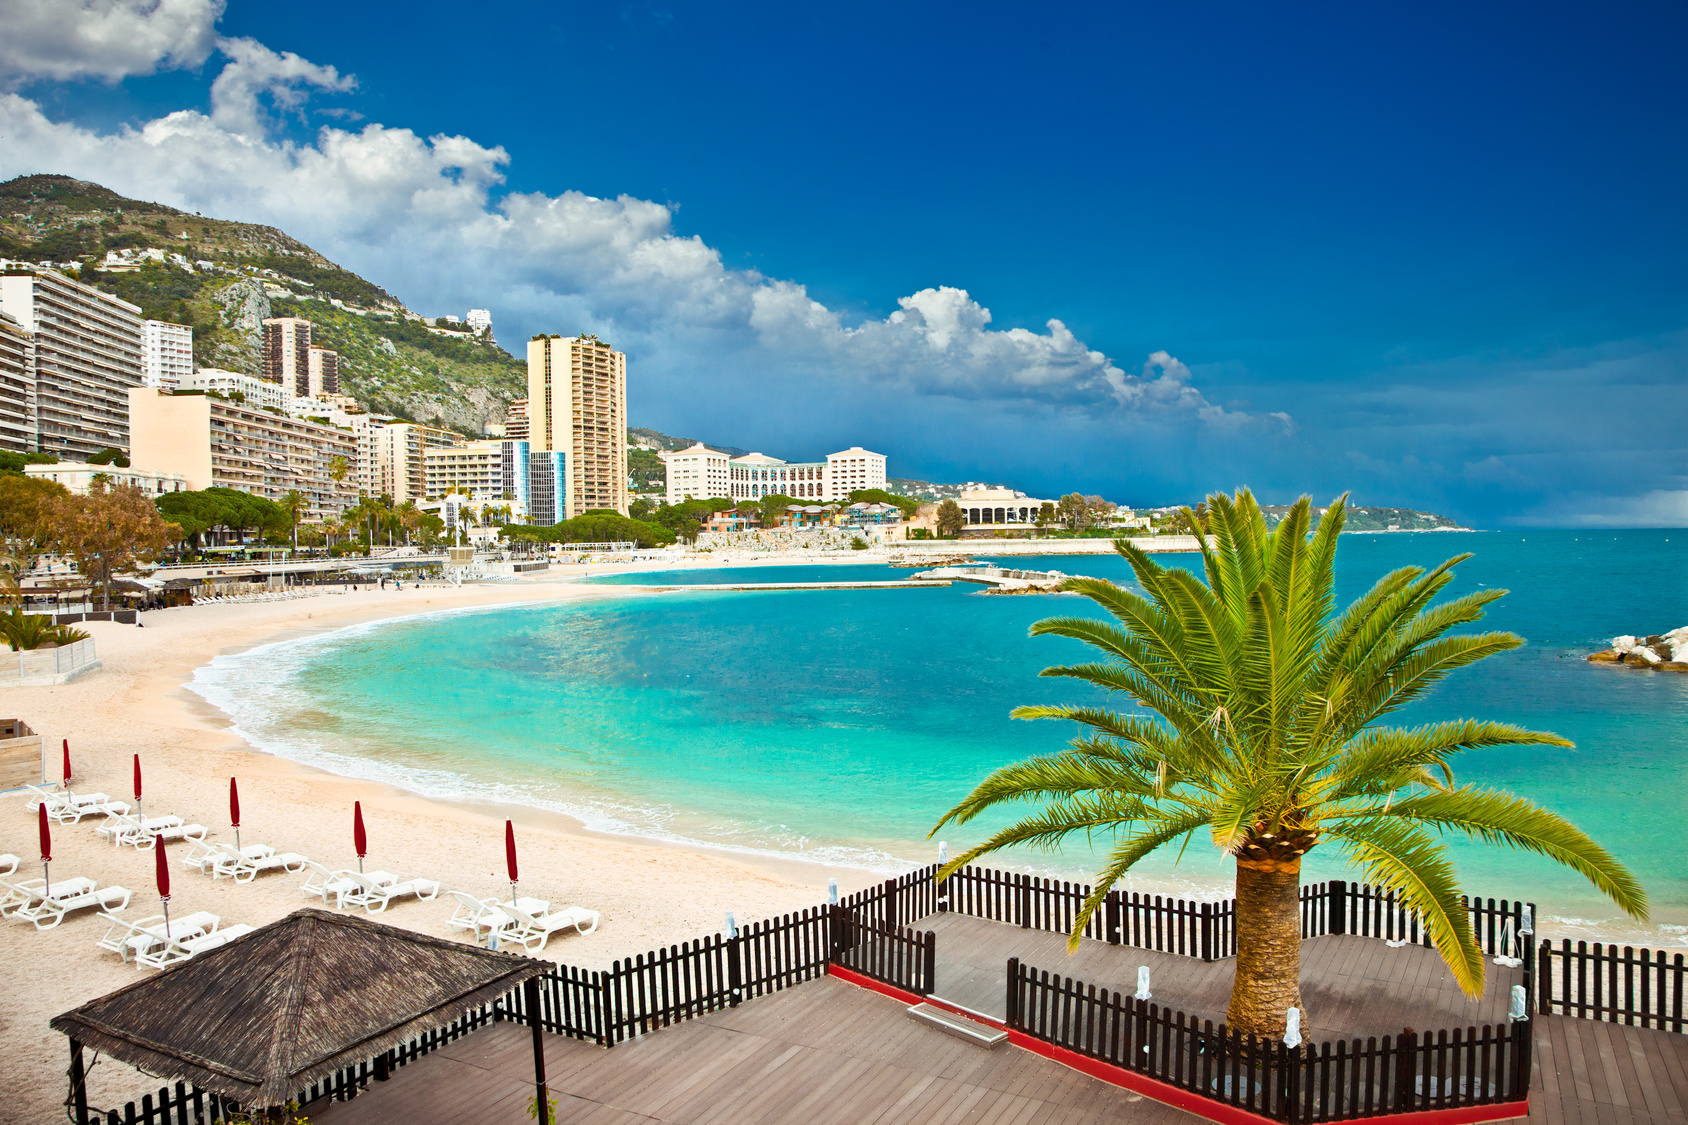 Beautiful Monte Carlo beaches, Monaco.Azur coast.